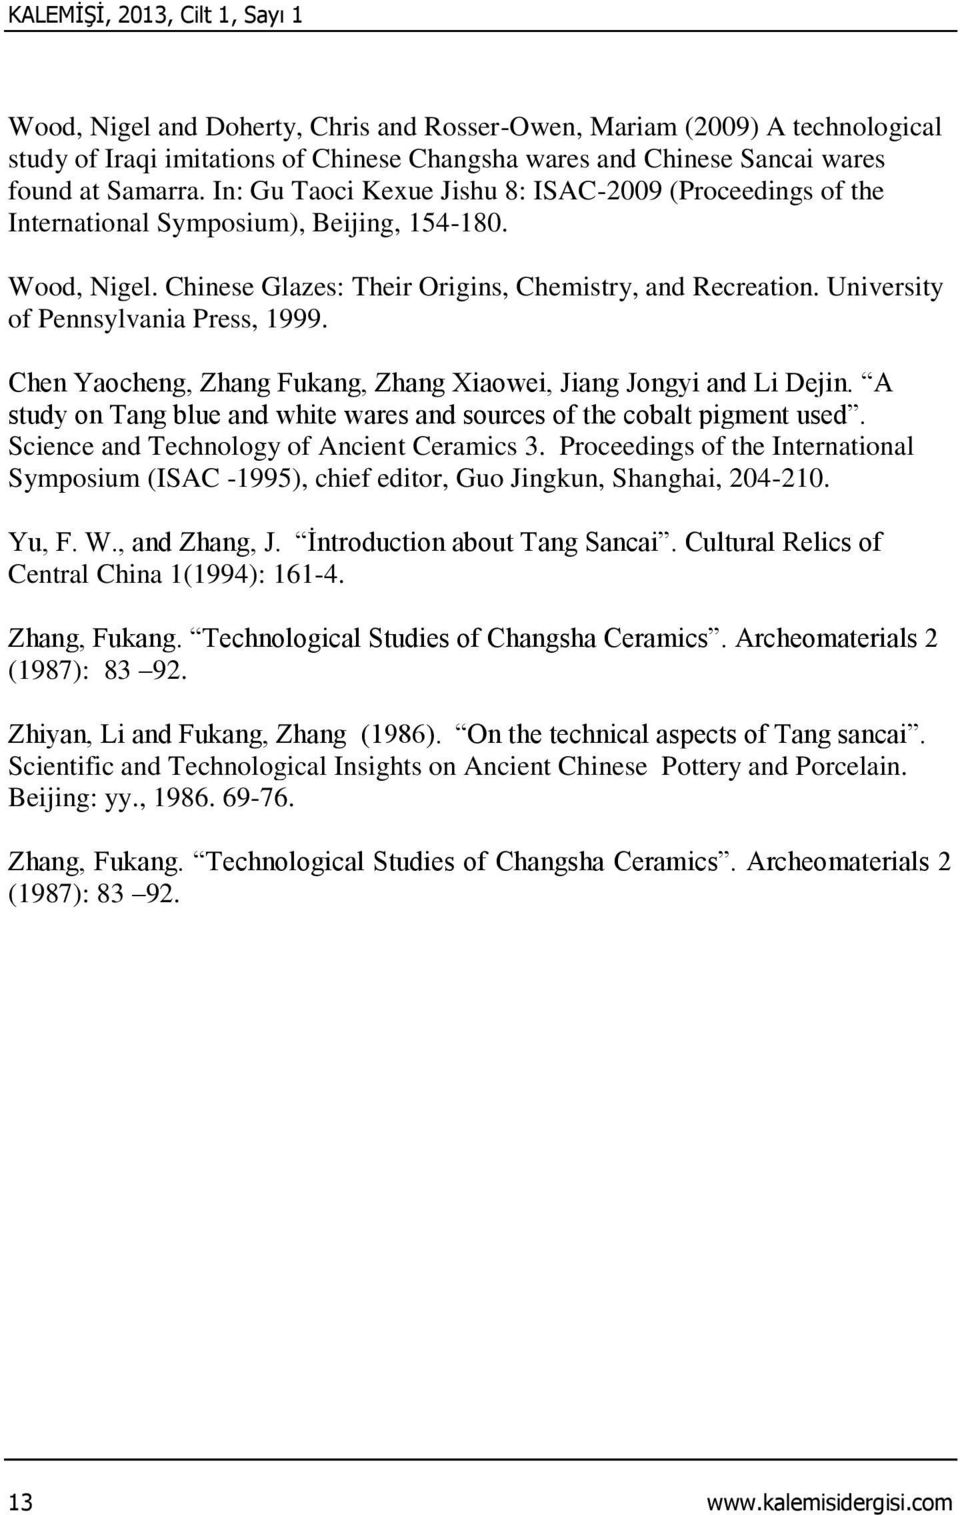 University of Pennsylvania Press, 1999. Chen Yaocheng, Zhang Fukang, Zhang Xiaowei, Jiang Jongyi and Li Dejin. A study on Tang blue and white wares and sources of the cobalt pigment used.